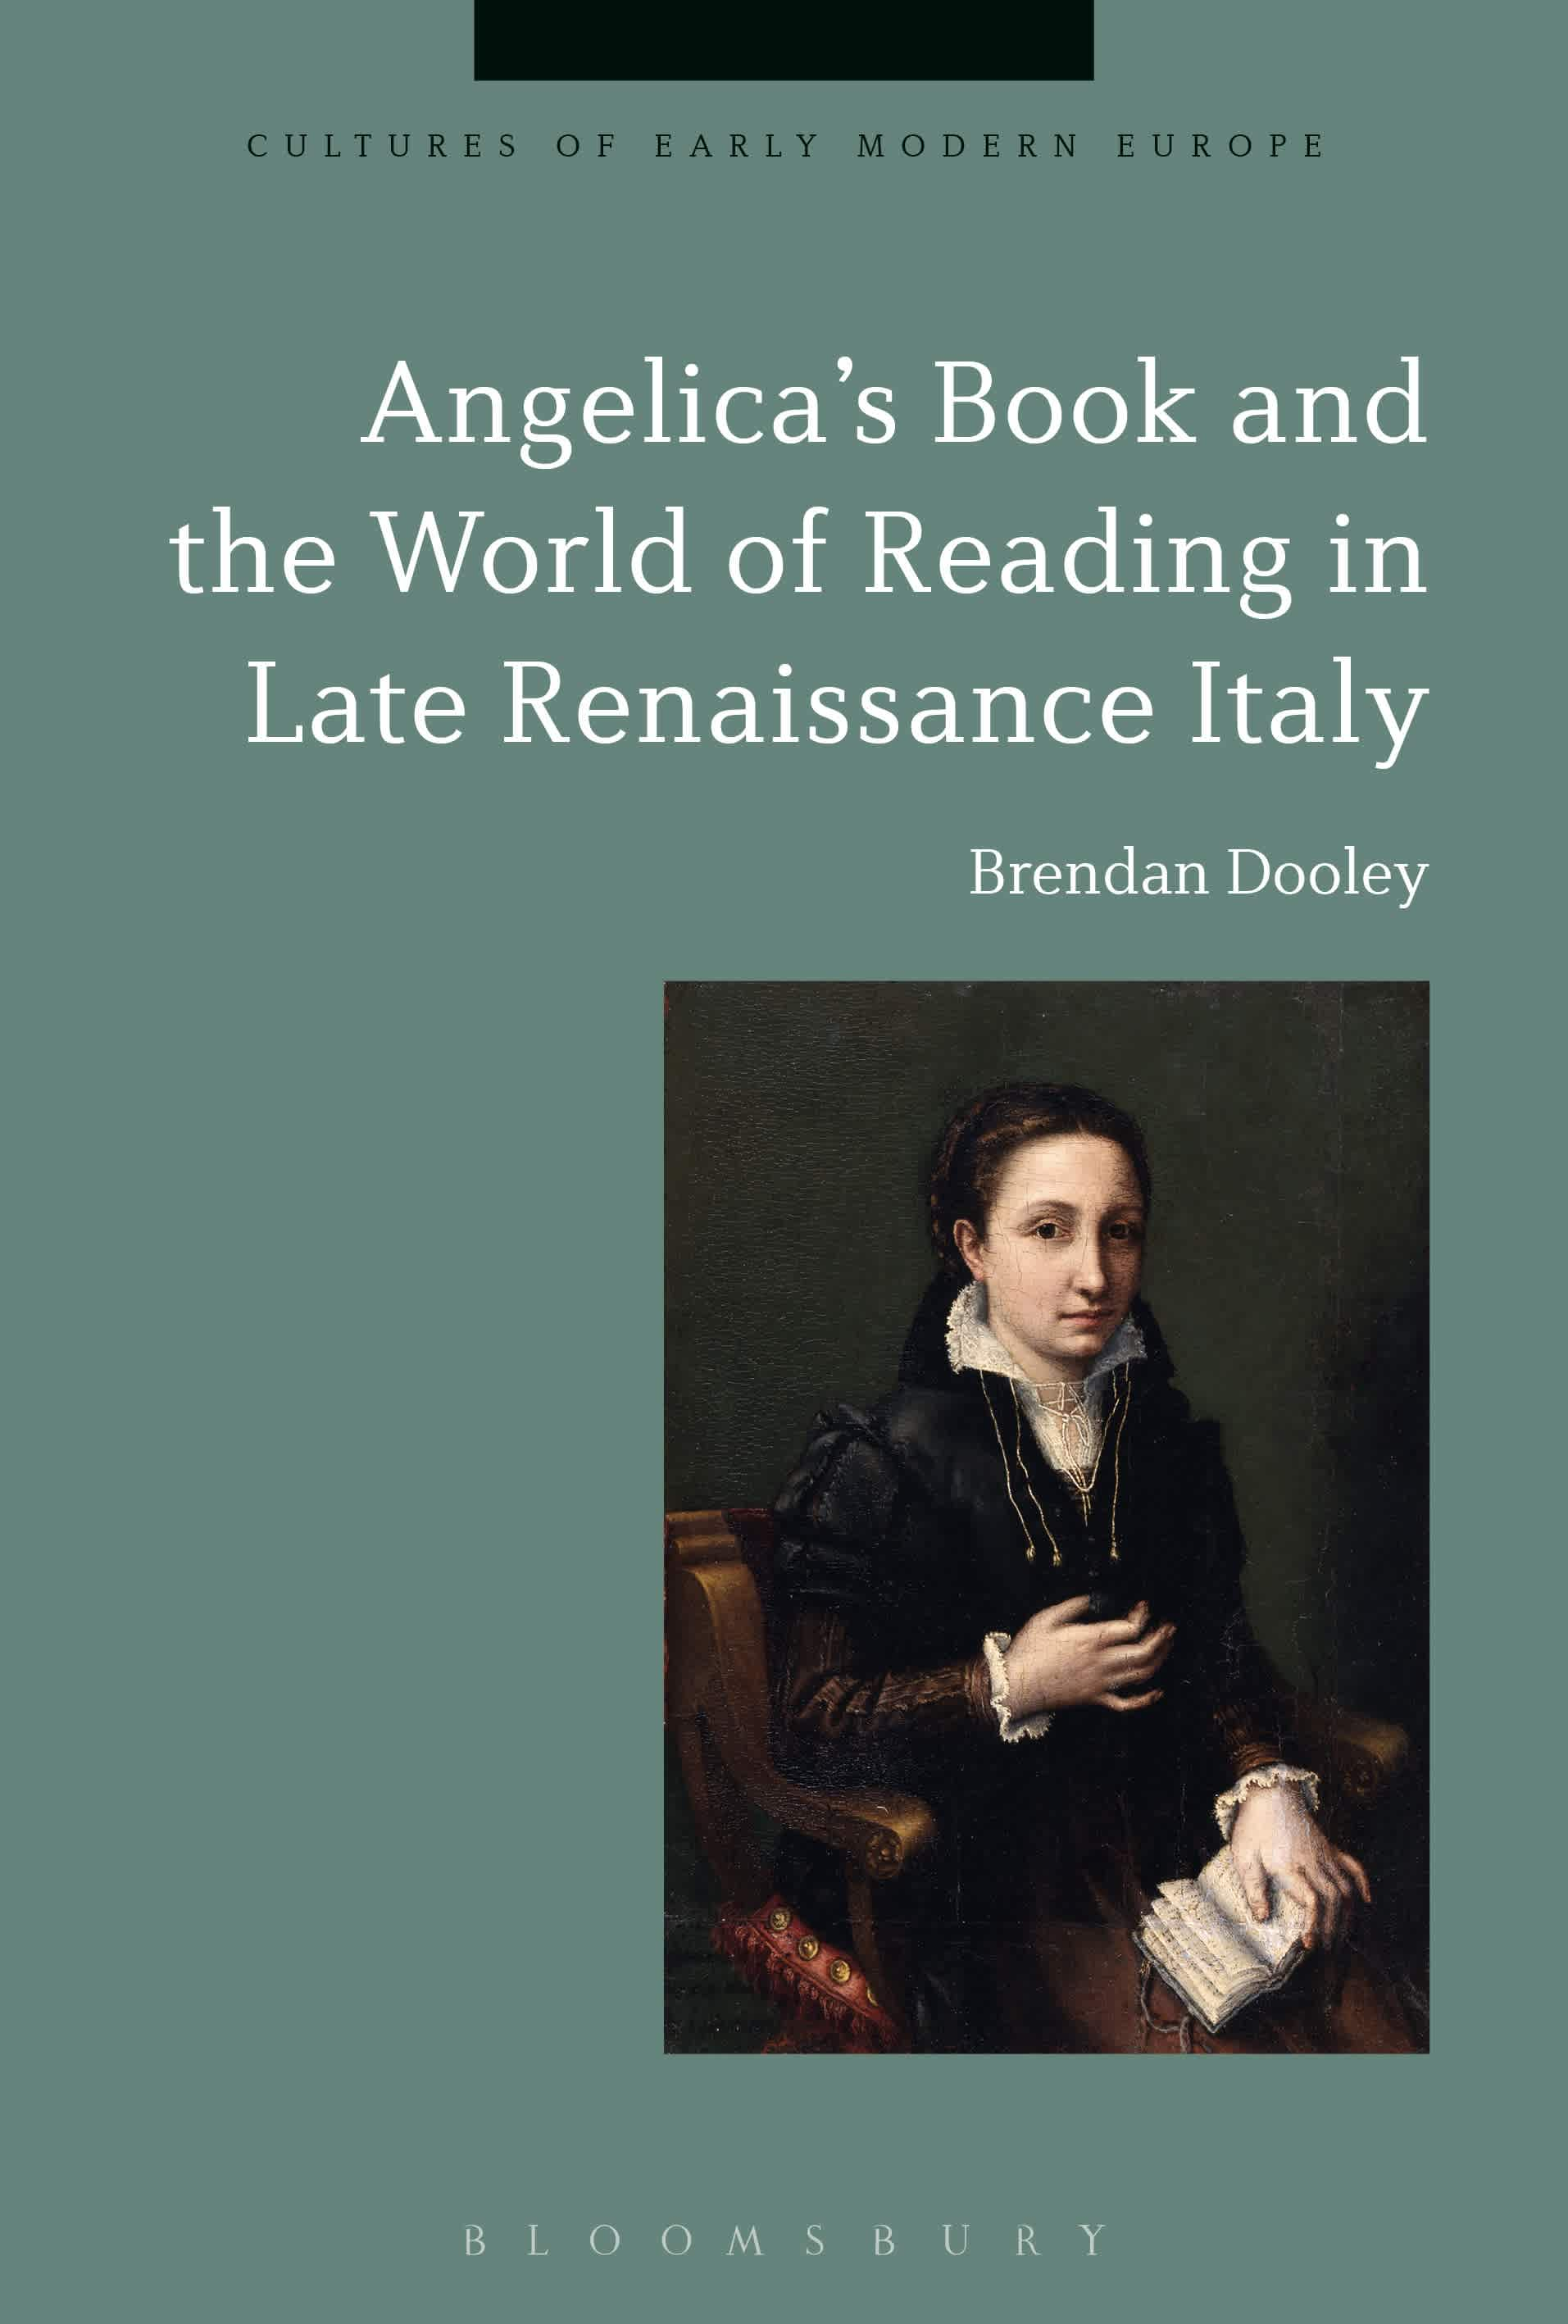 Bloomsbury cultural history ebooks angelicas book and the world of reading in late renaissance italy fandeluxe Choice Image